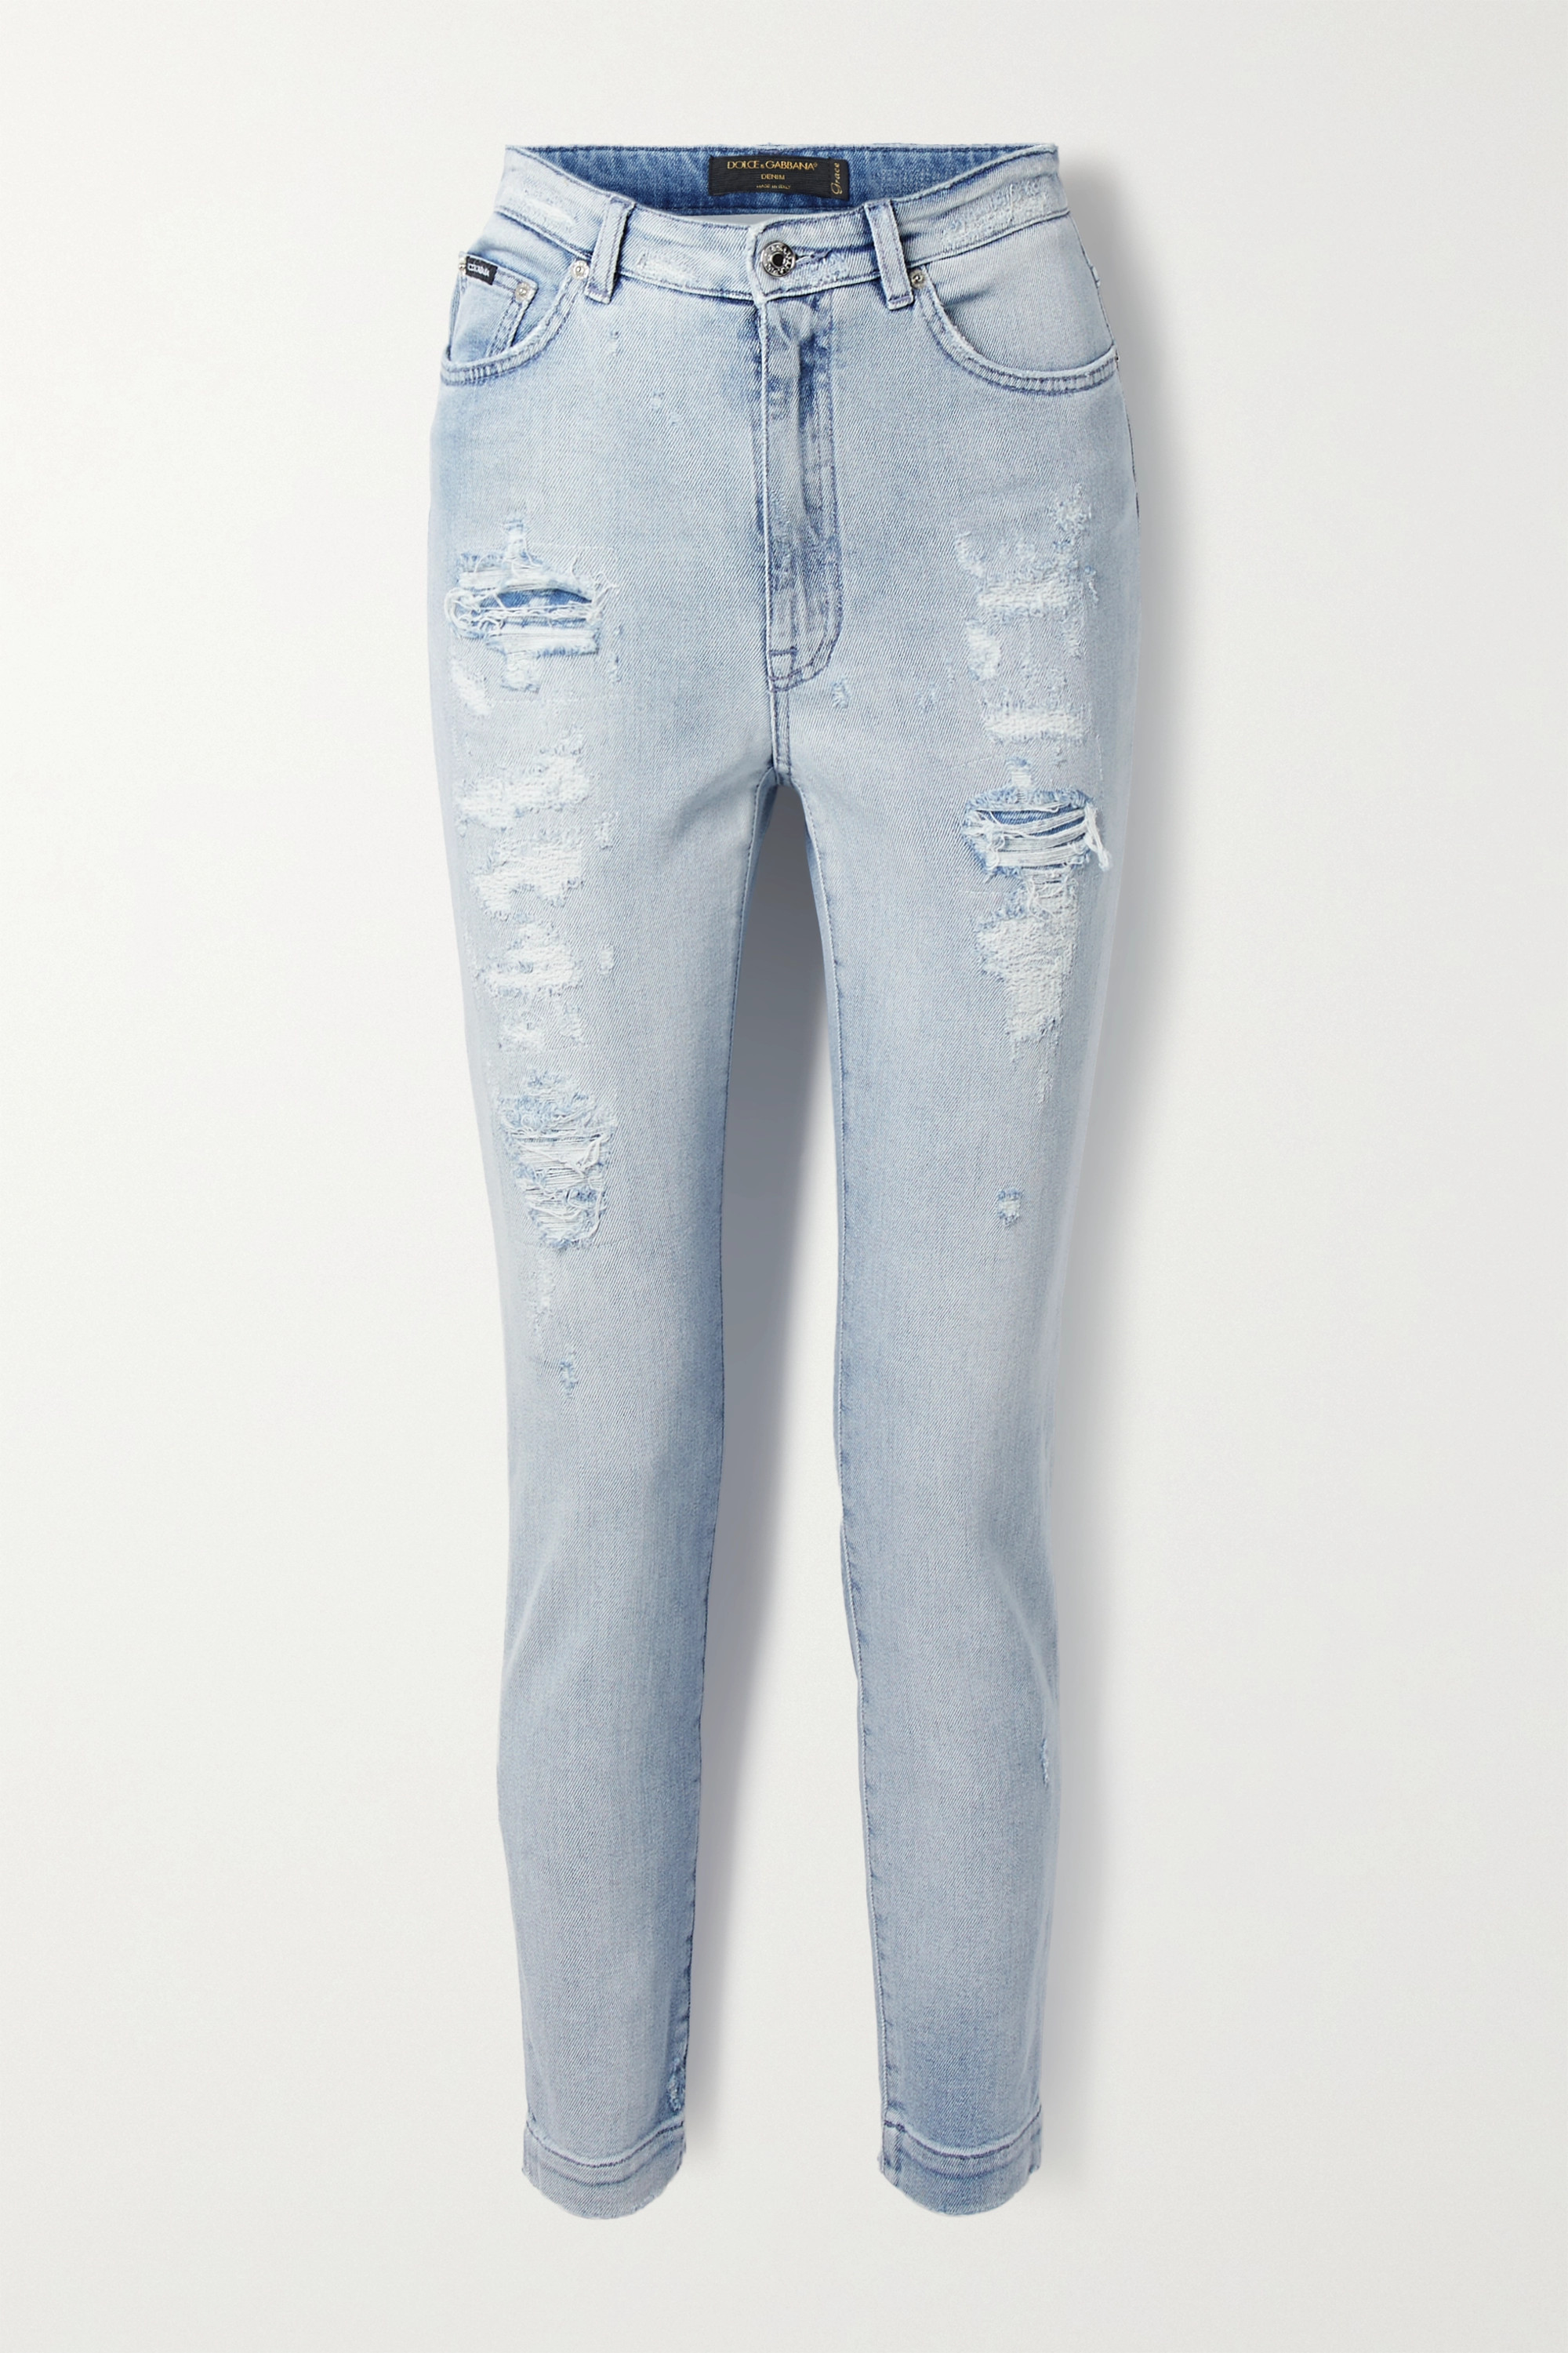 Dolce & Gabbana - Distressed high-rise skinny jeans